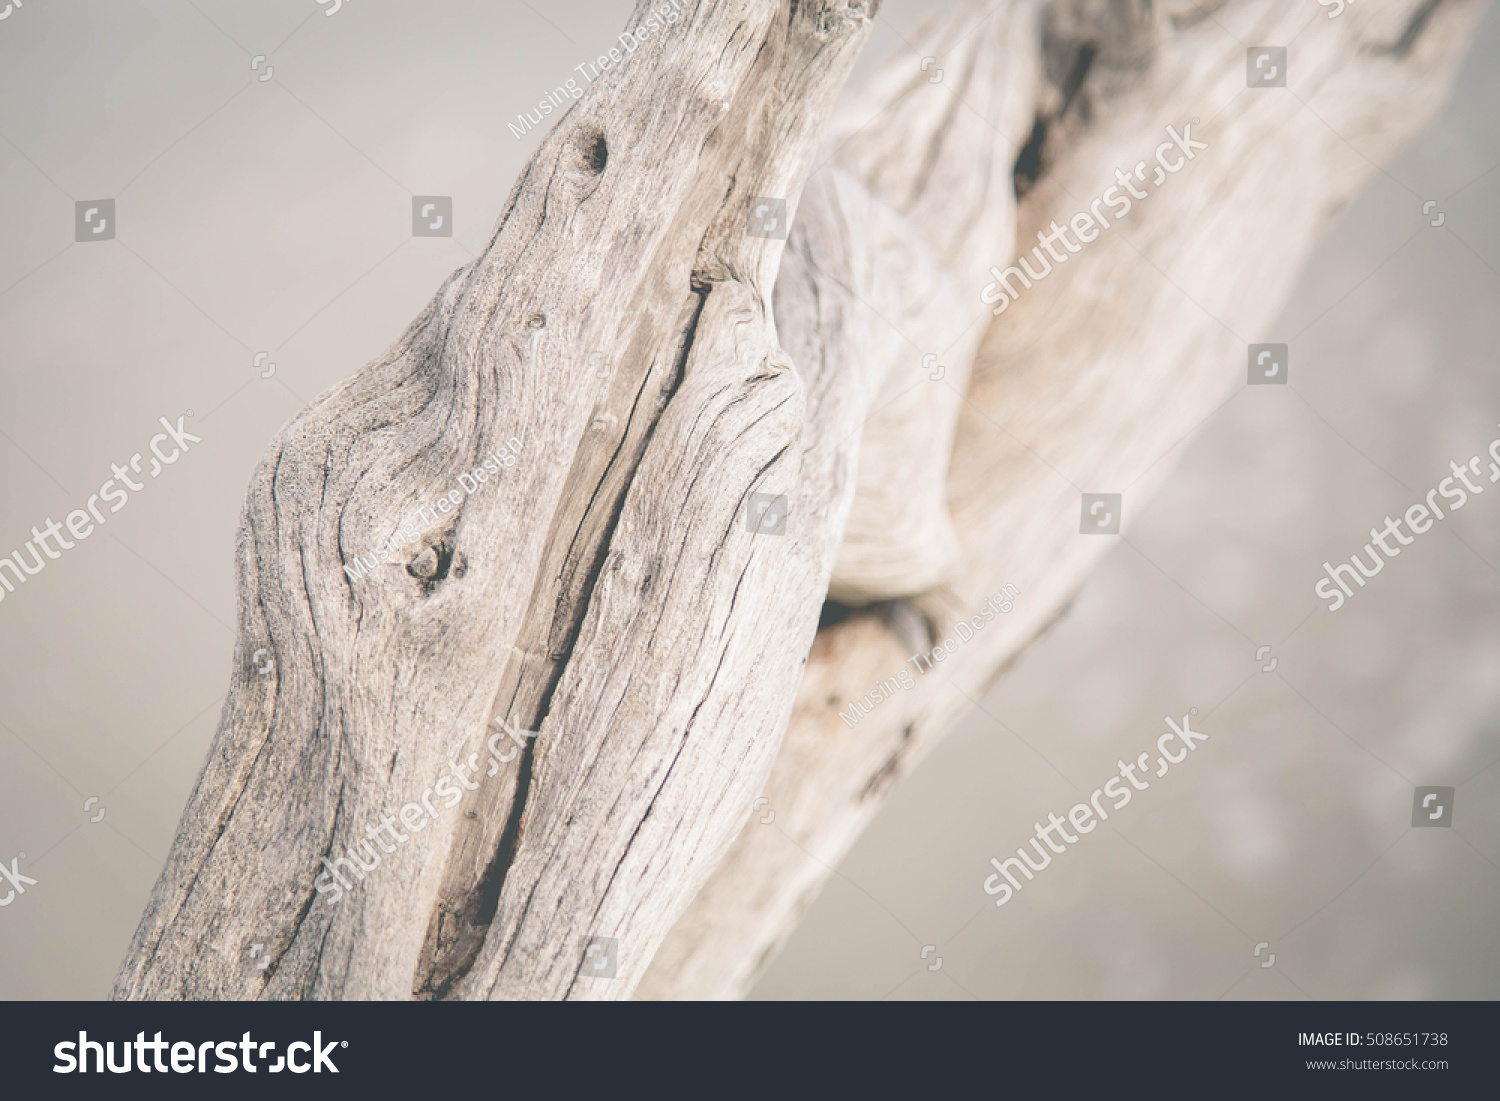 Details of driftwood on the beach. #508651738